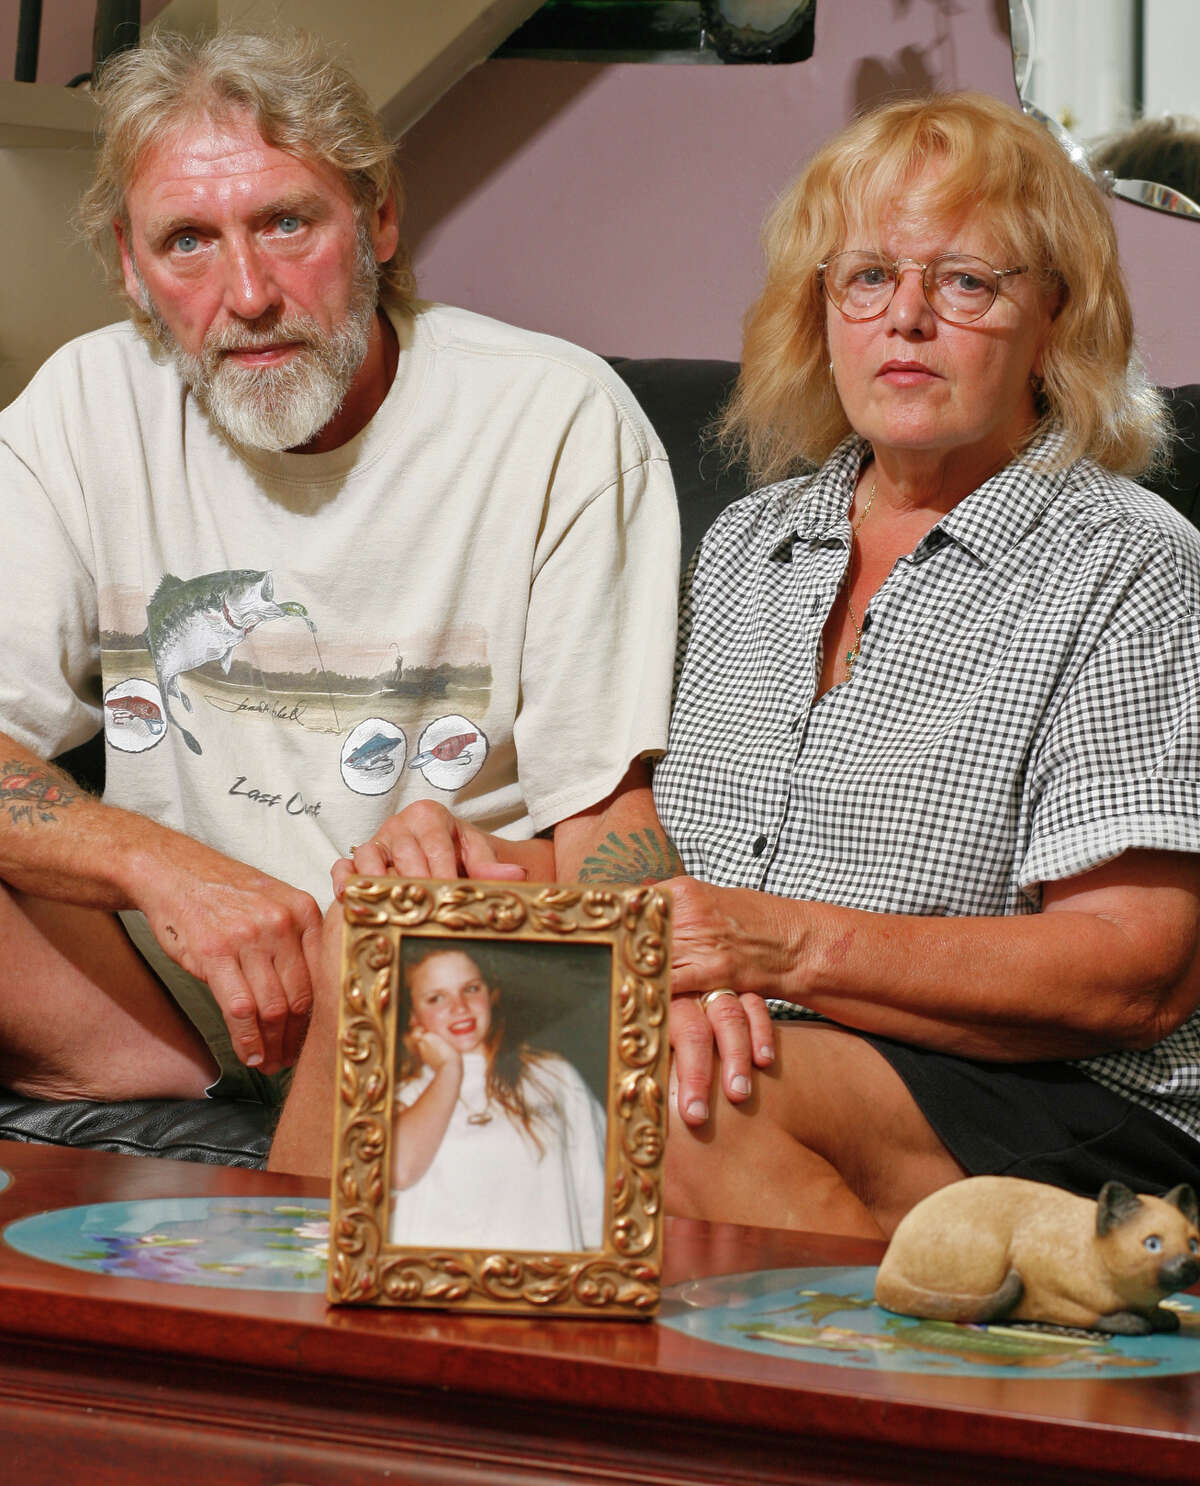 Randy and Sandy Ertman left Houston 8 years ago for a home near Lake Somerville, where they wait Friday afternoon May 12, 2006, to attend the execution next week for Sean O'Brien, convicted in the murder of their daughter Jennifer Ertman. O'Brien is the first of the Black and White Gang to face the death penalty. Besides O'Brien, four others were convicted and given a death sentence in the murders of then 14 year-old Ertman and Elizabeth Pena, then 16. A then 14 year-old received life in prison for his part in the murders, and the two 17 year-olds had their death sentence commuted to life in prison, after the Supreme Court rejected death sentences for underage offenders. (Houston Chronicle/Ben DeSoto)